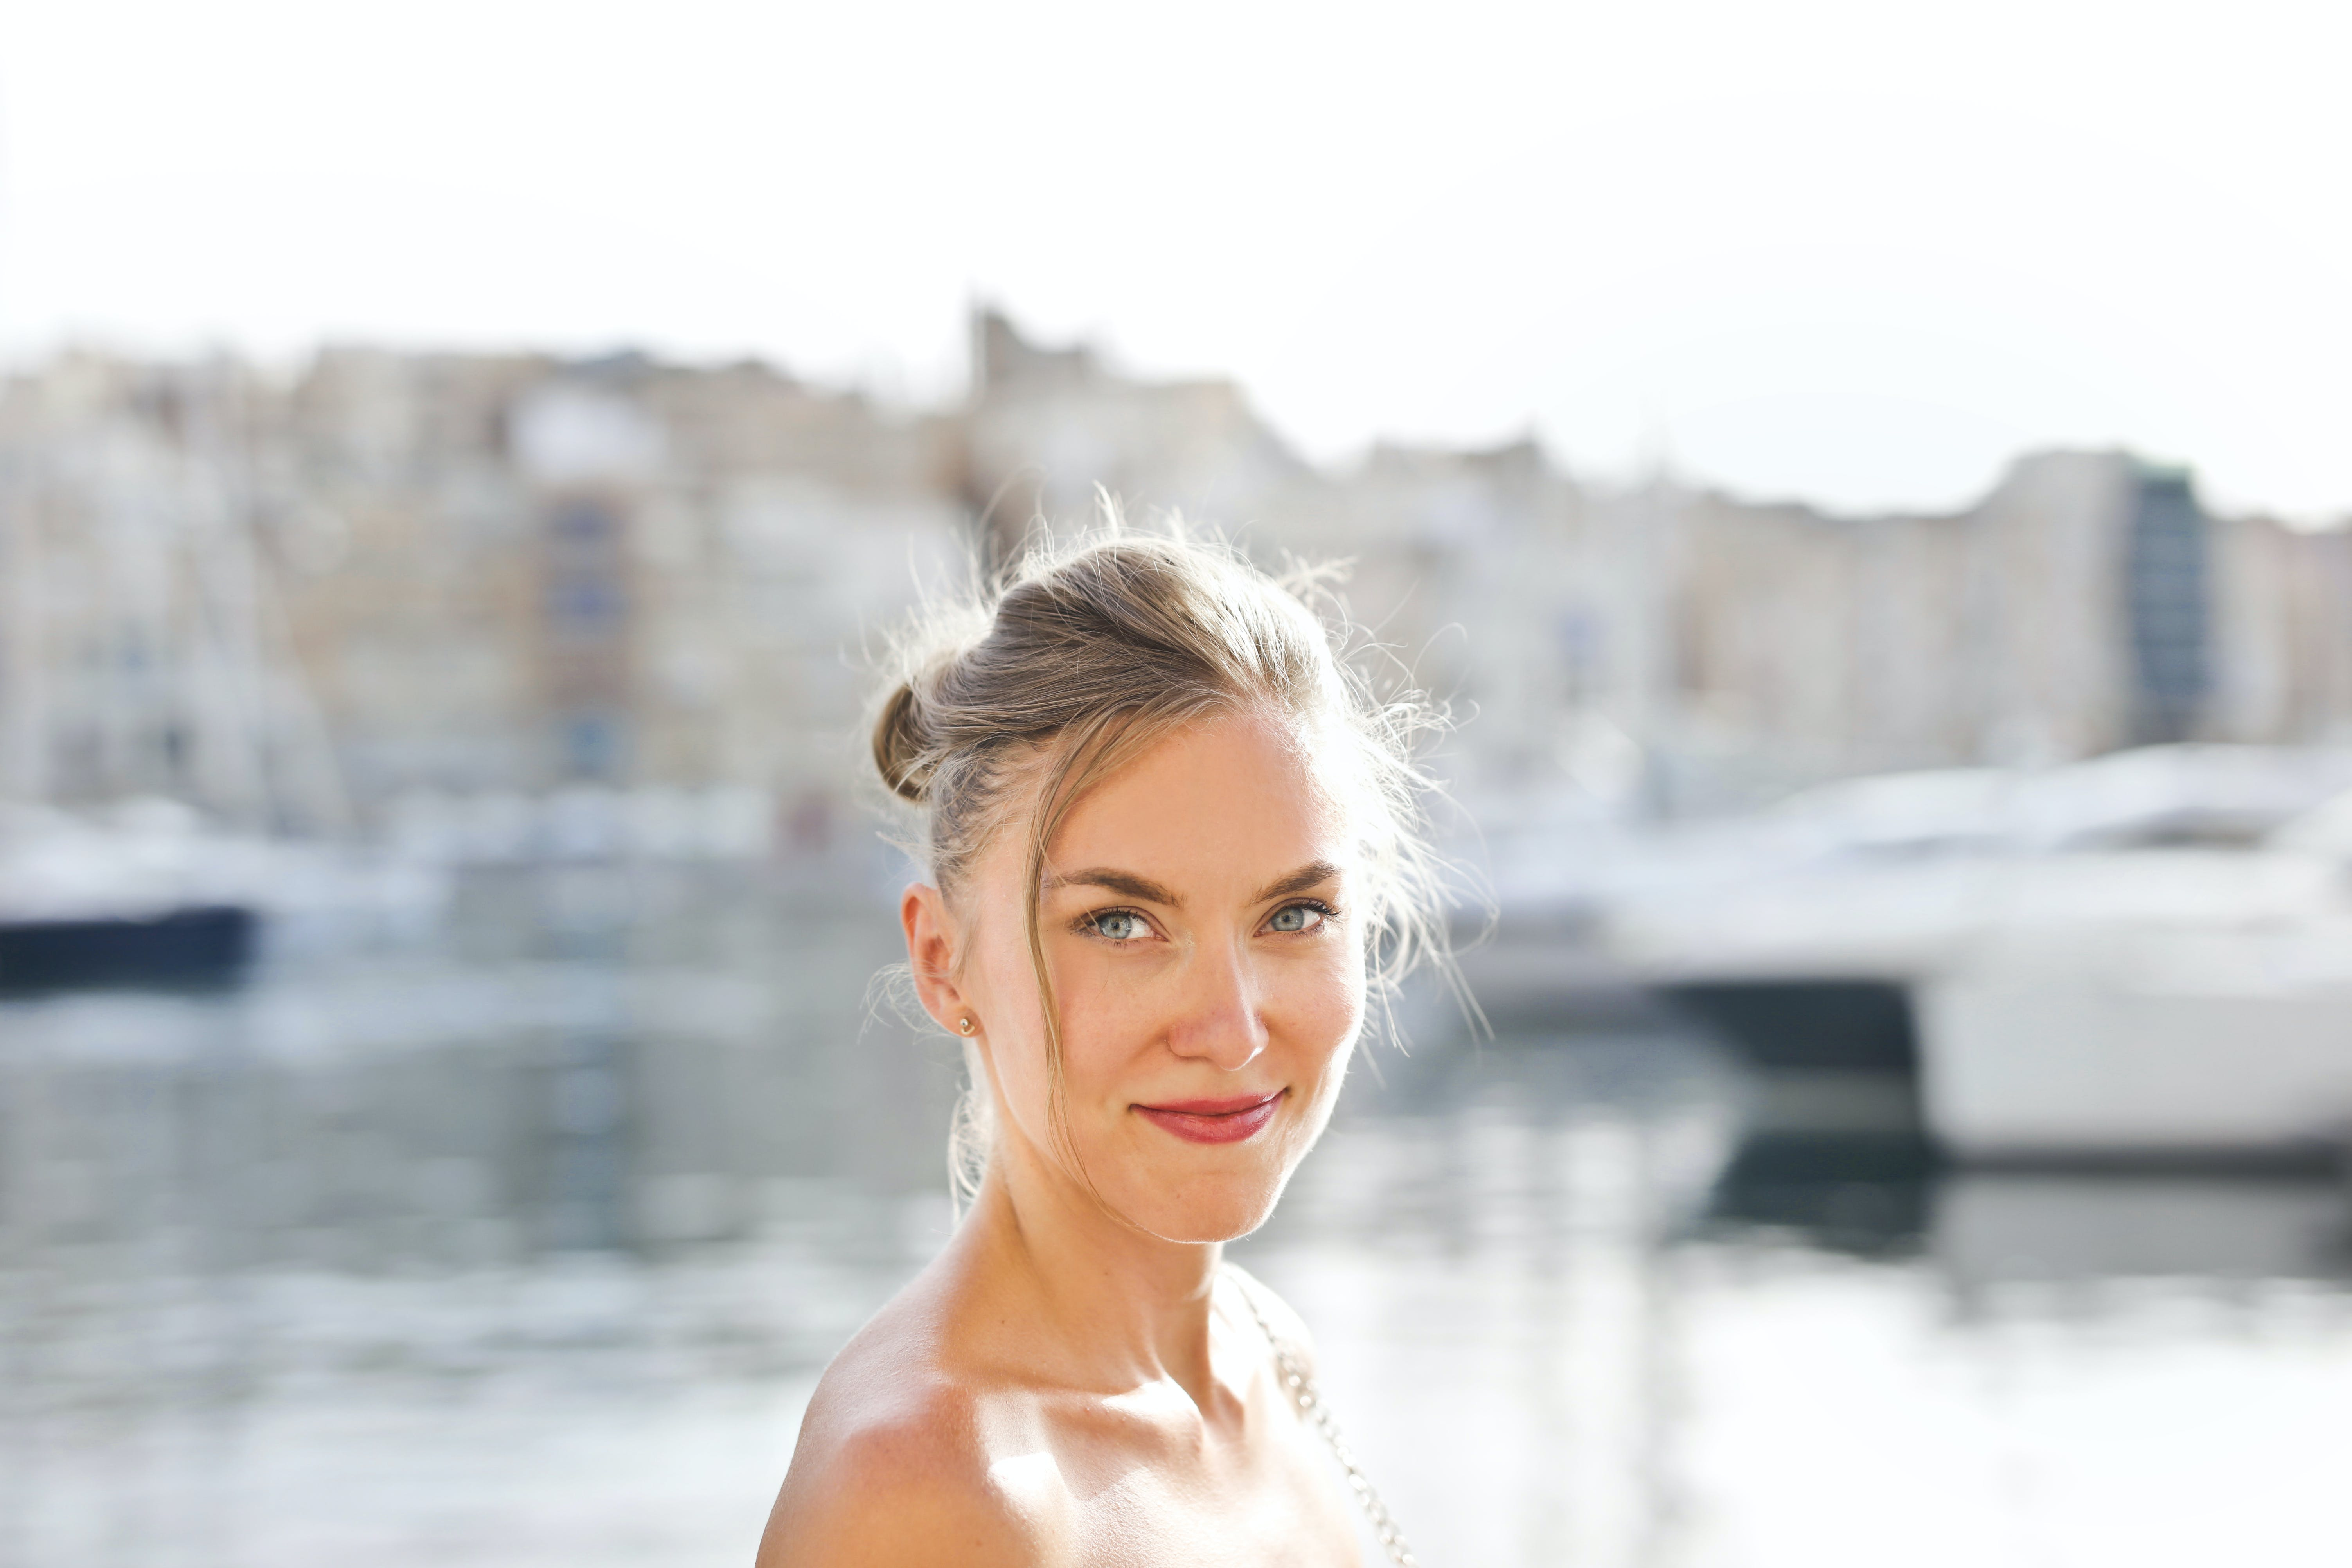 Smiling Woman Standing Near Body of Water Under Blue Sky